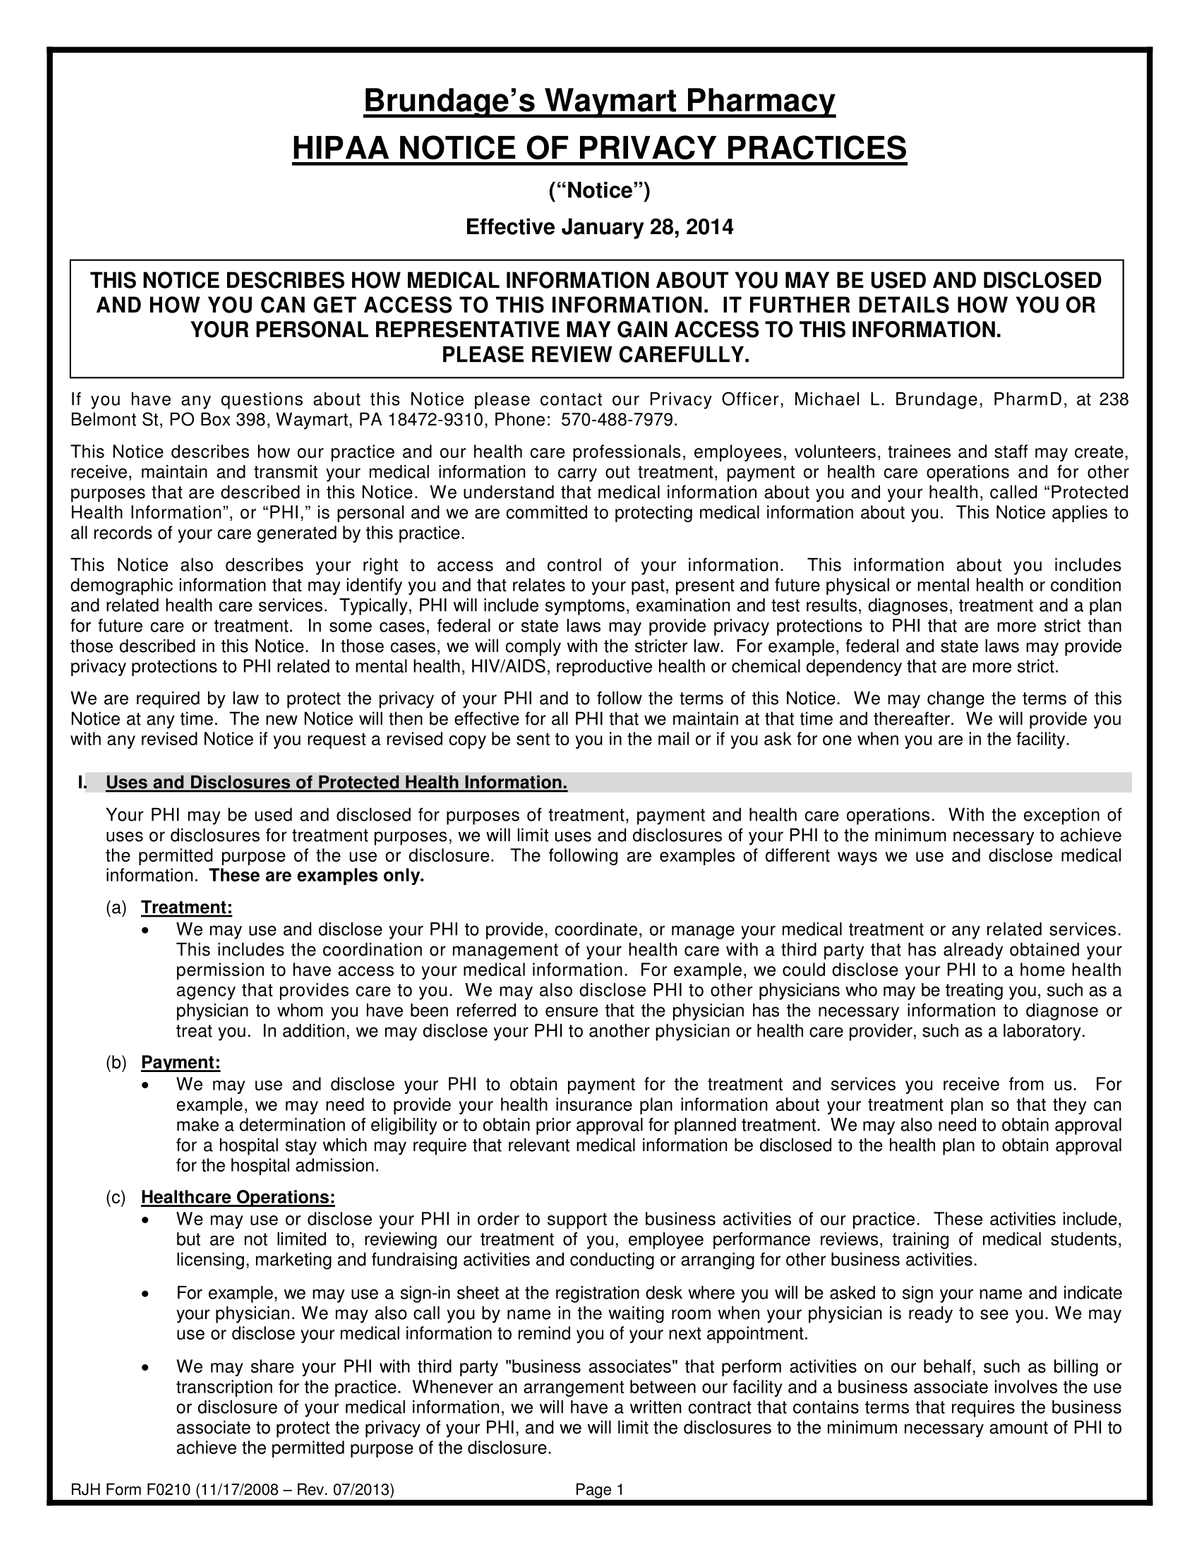 Notice of Privacy Practices January 2014-1.png